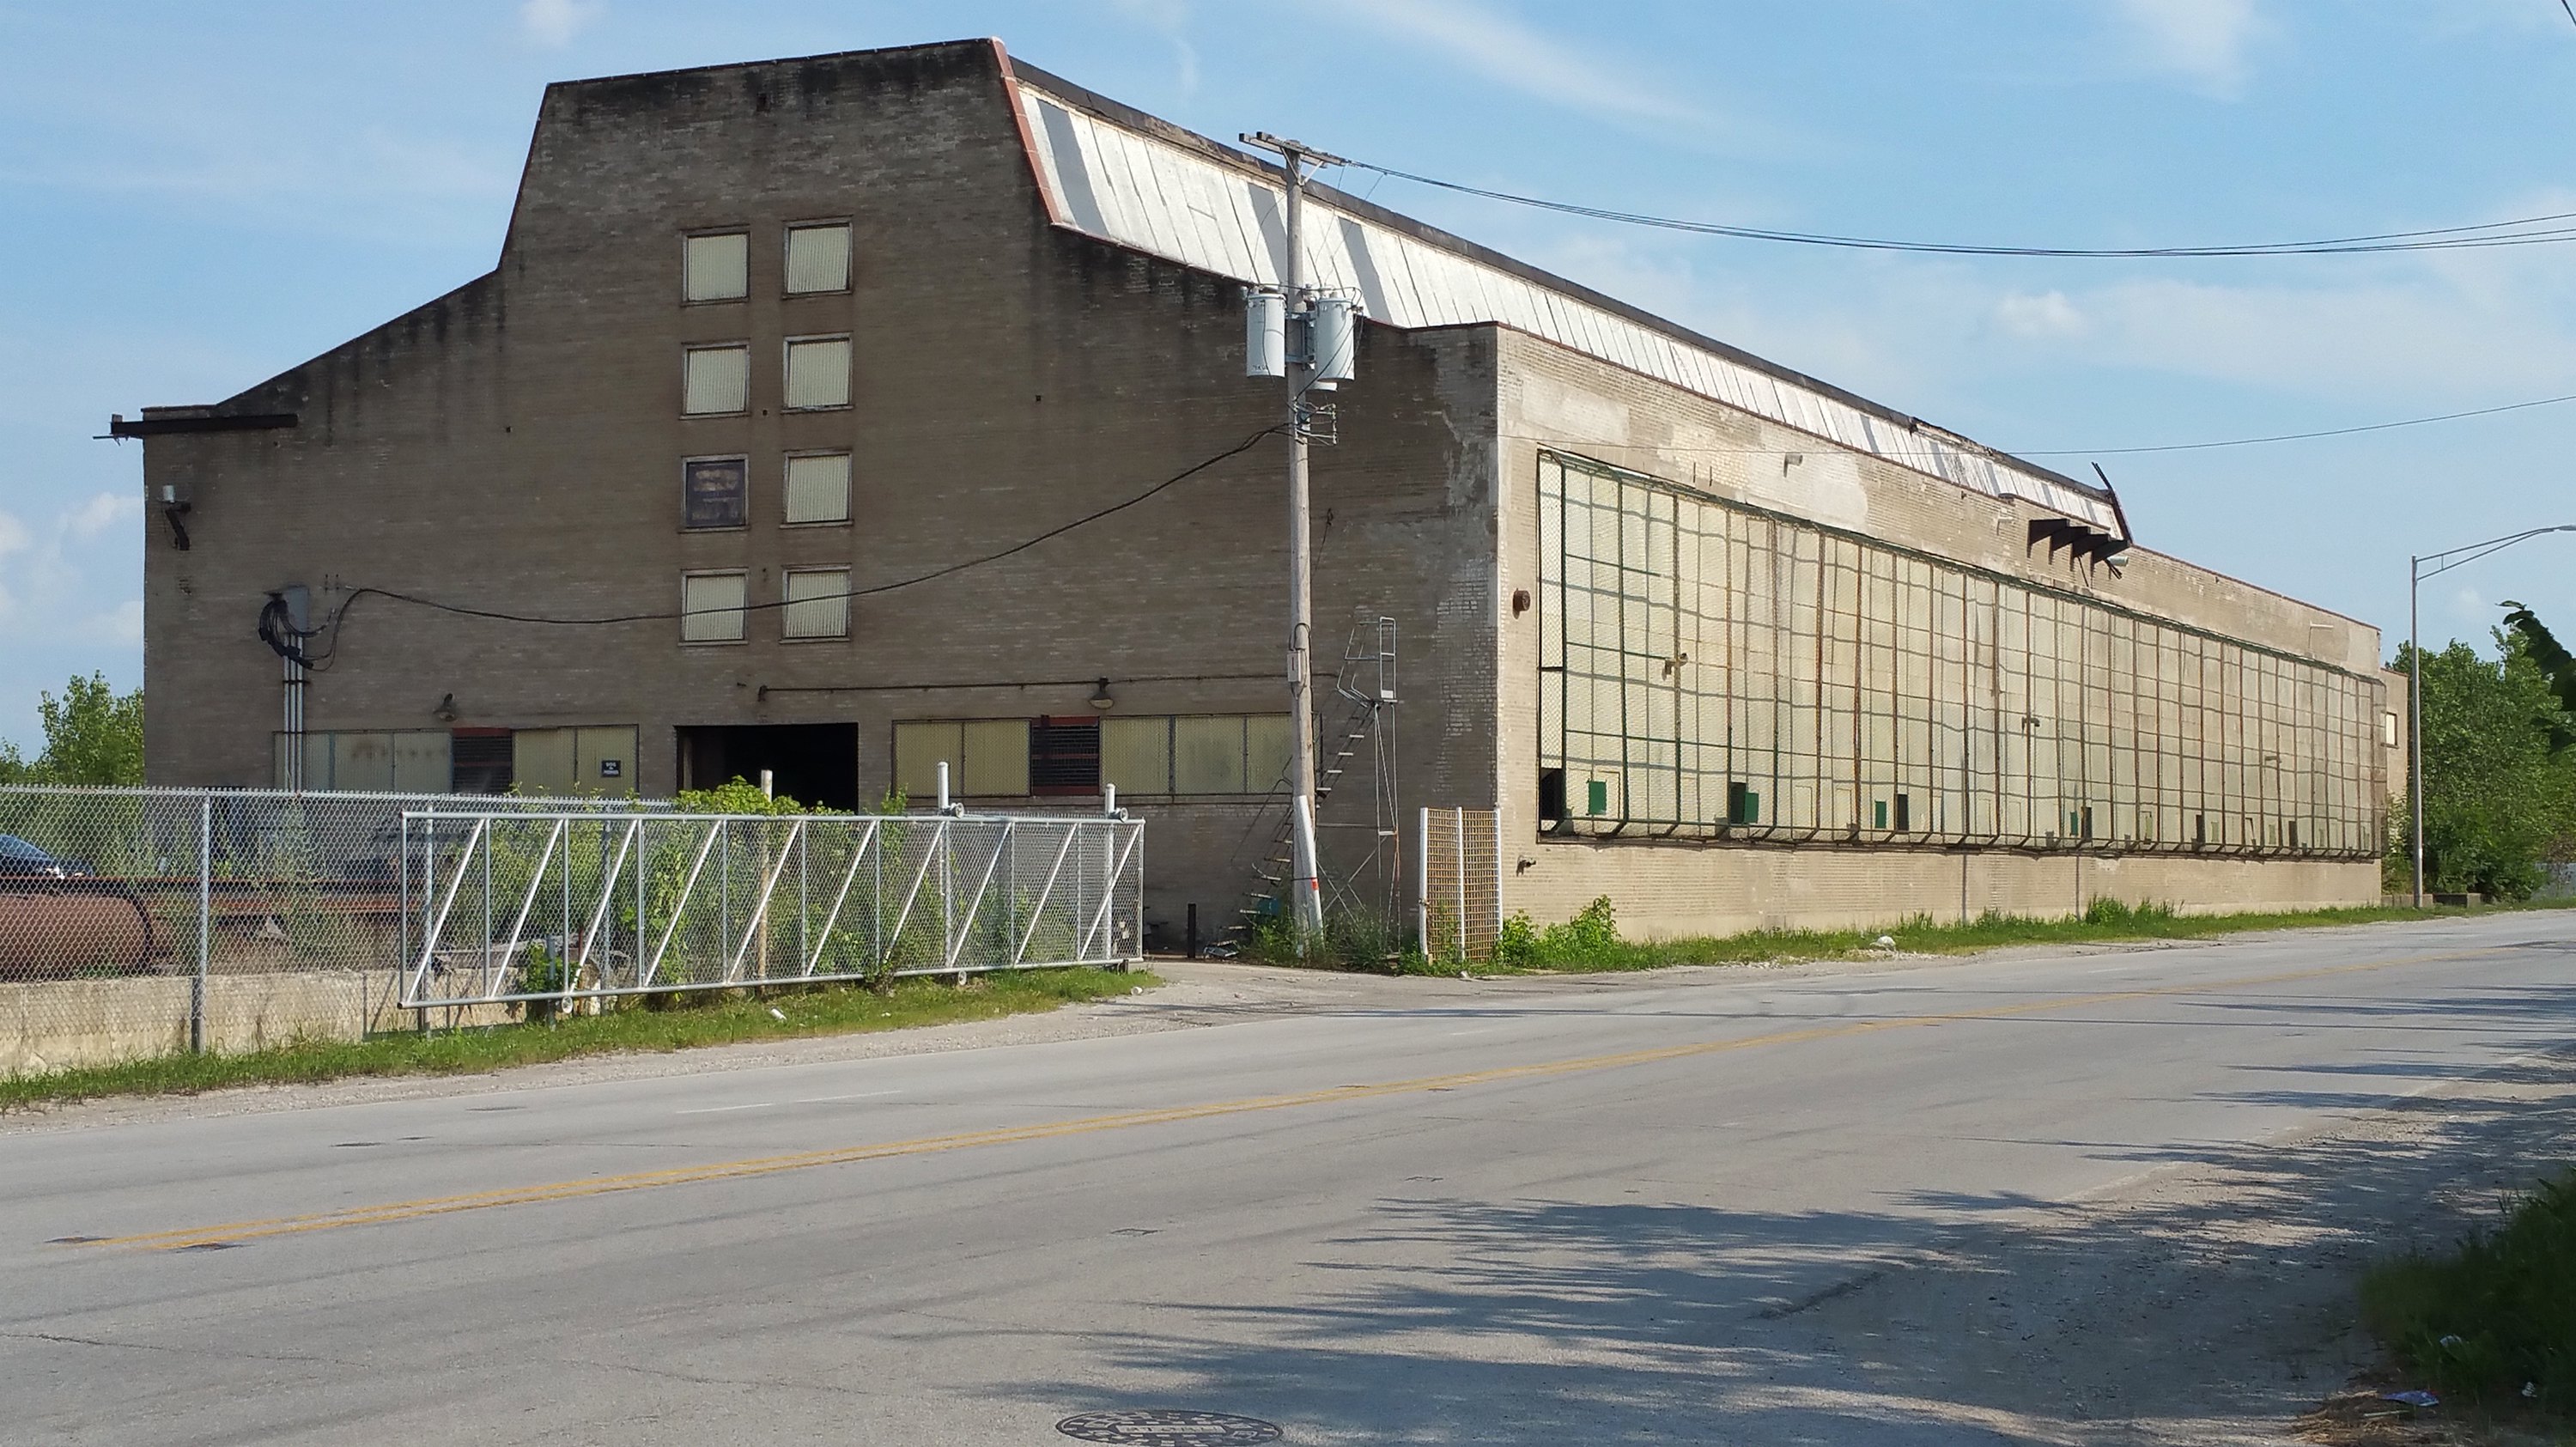 This building is one of the last two remnants of the century-old Wyman-Gordon factory where workers produced parts for military and commercial aircraft. The factory closed in 1986 and 350 workers lost jobs. (Cheryl Corley/NPR)